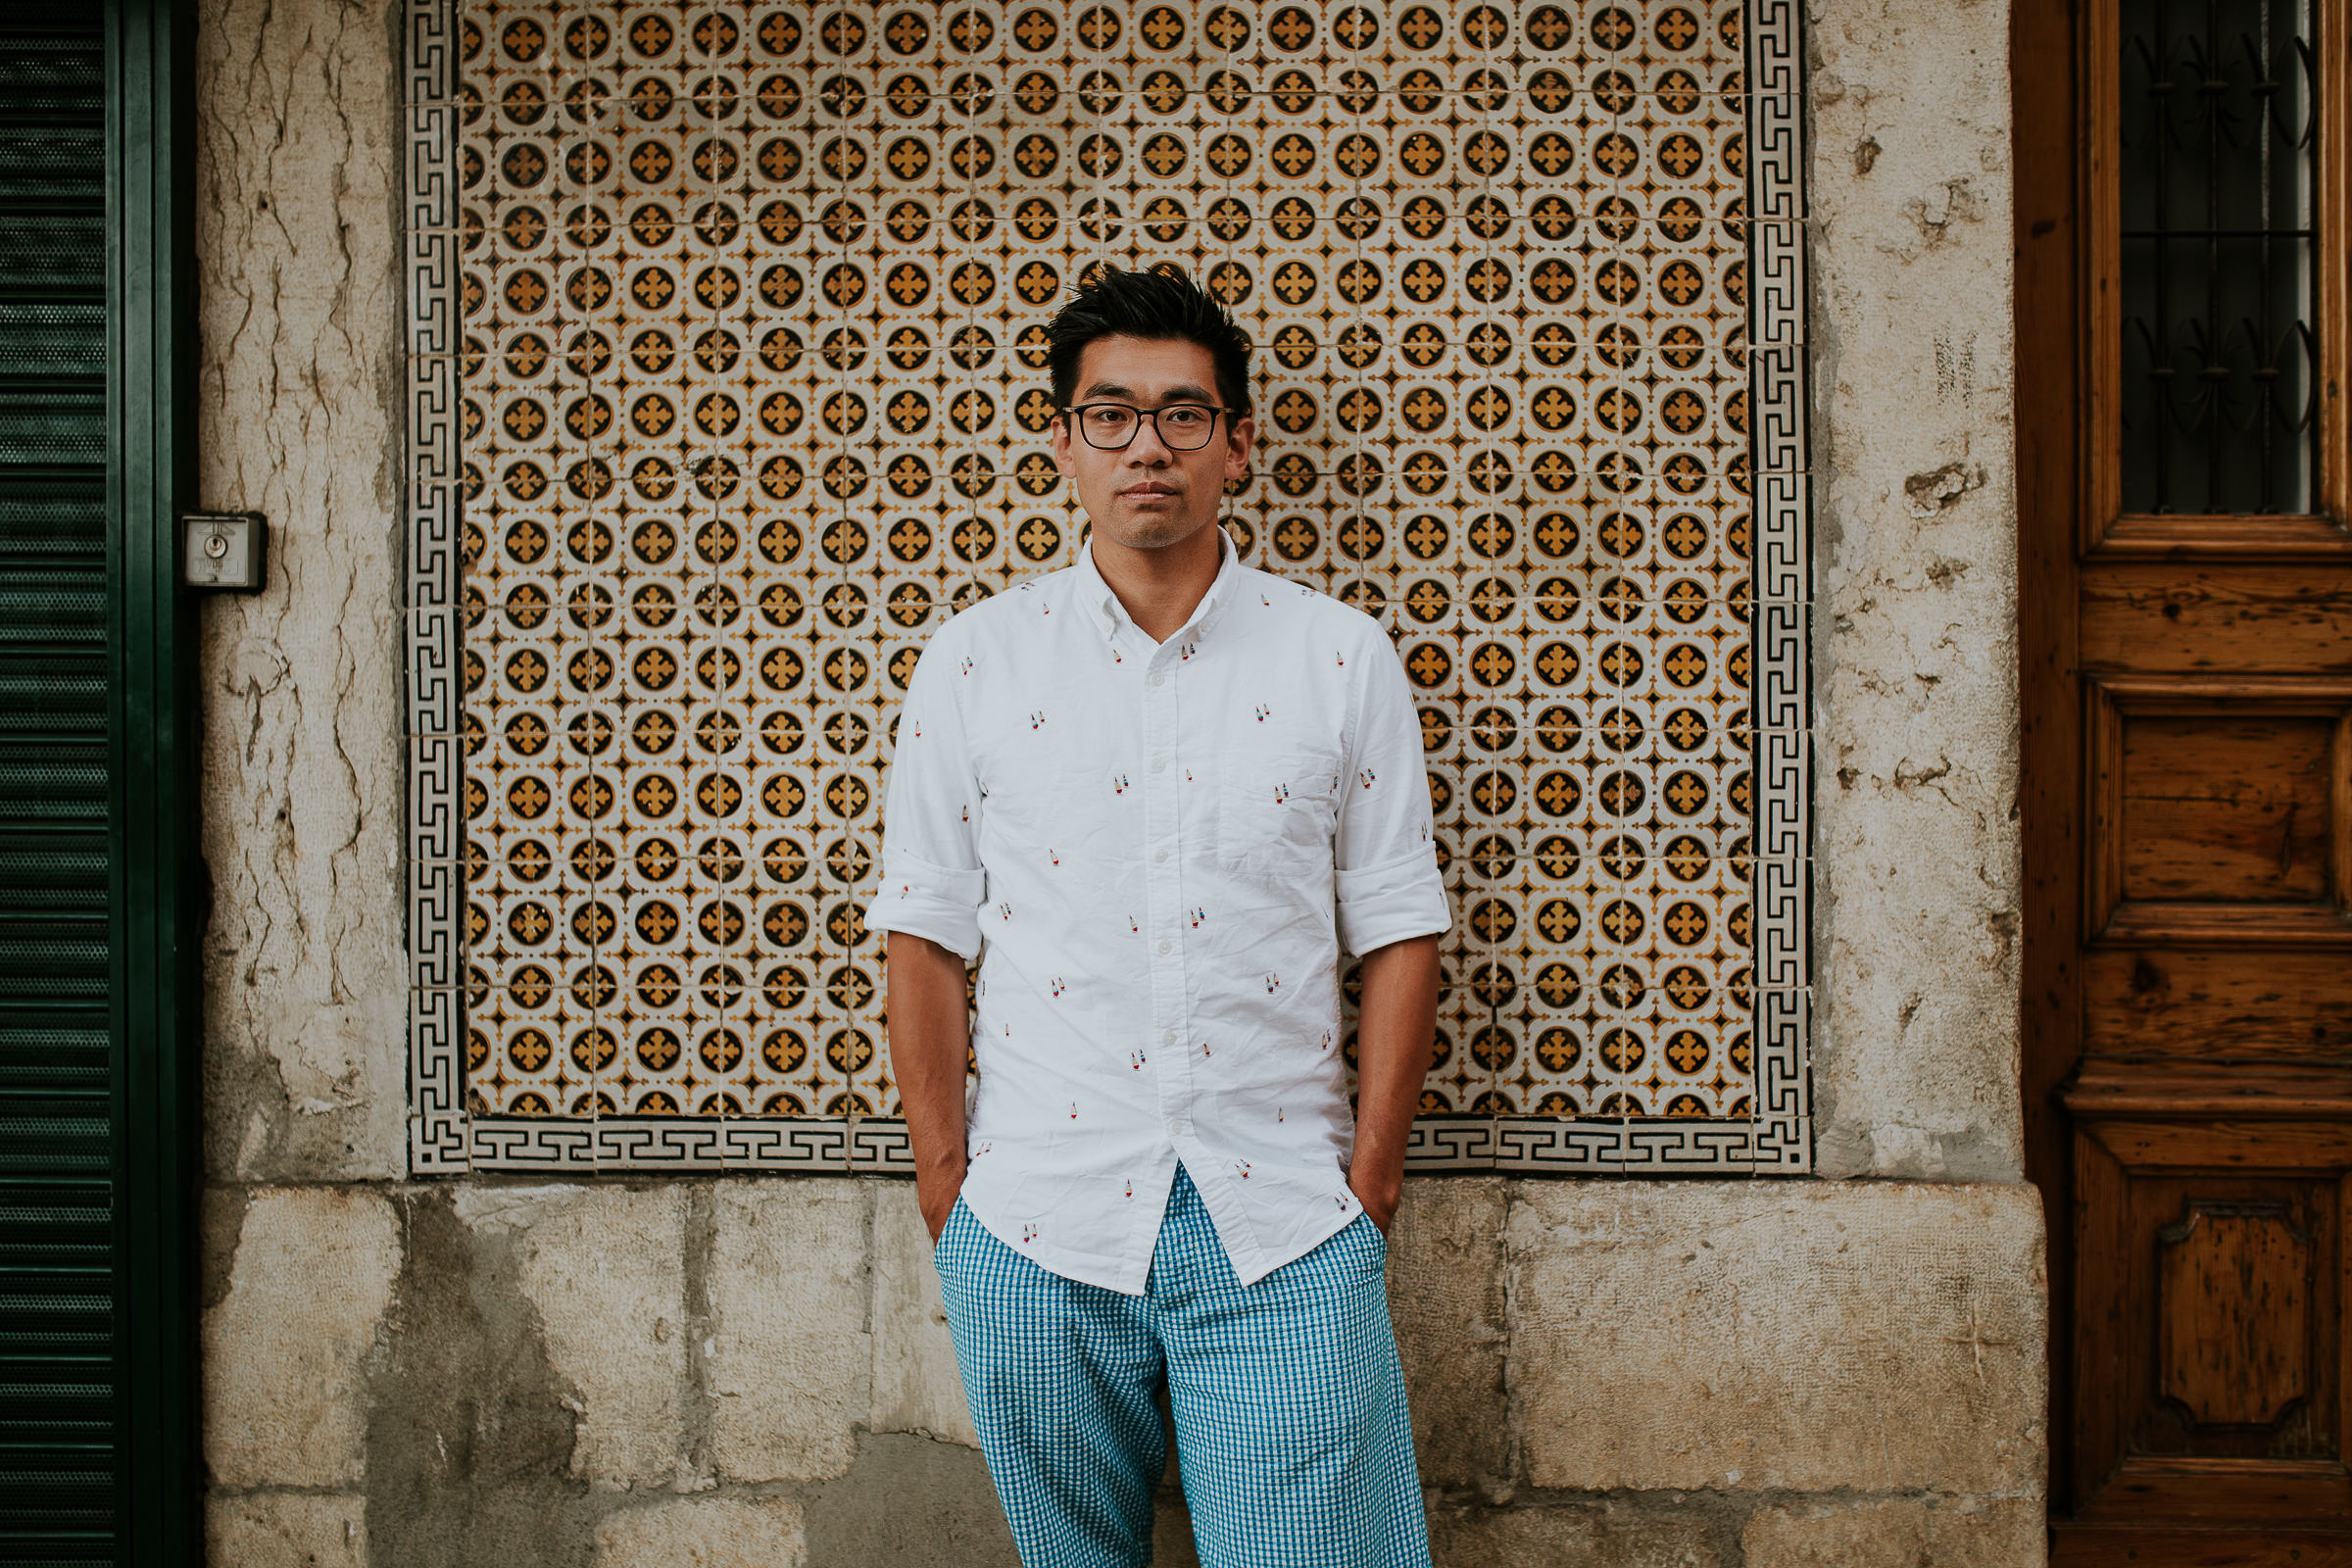 asian man in lisbon street with tiles in background